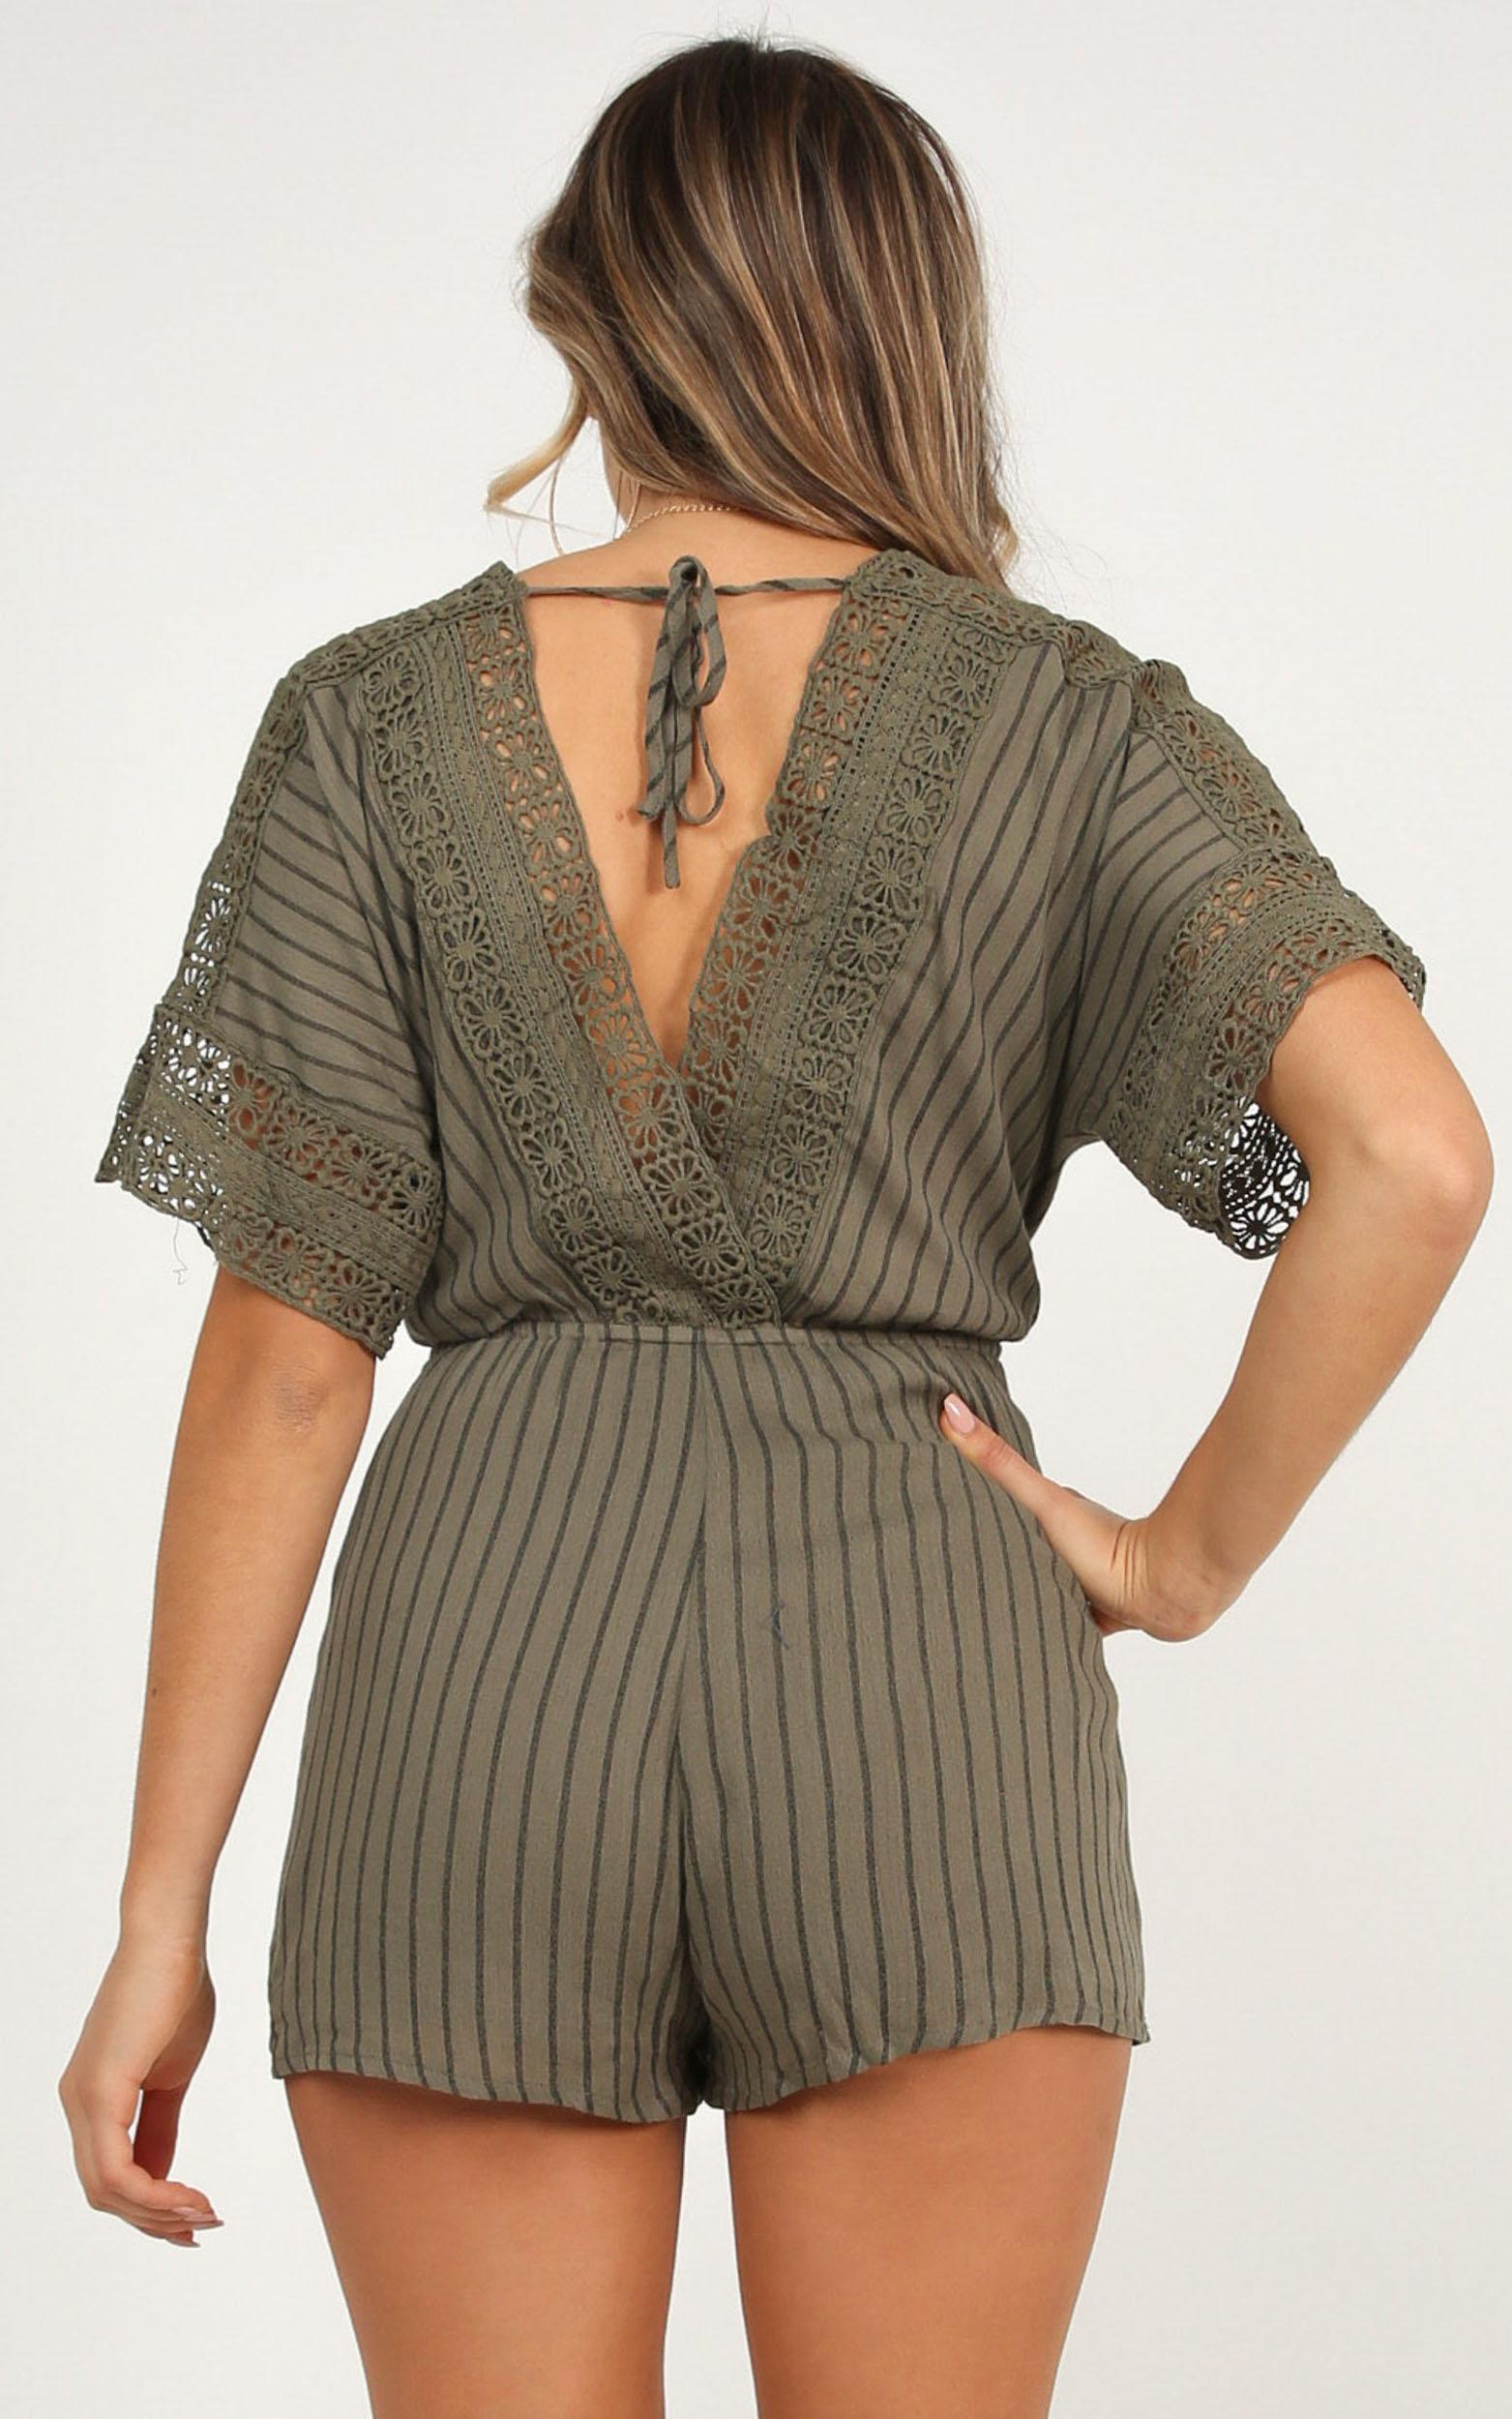 Find Your Destiny playsuit in khaki stripe - 12 (L), Khaki, hi-res image number null